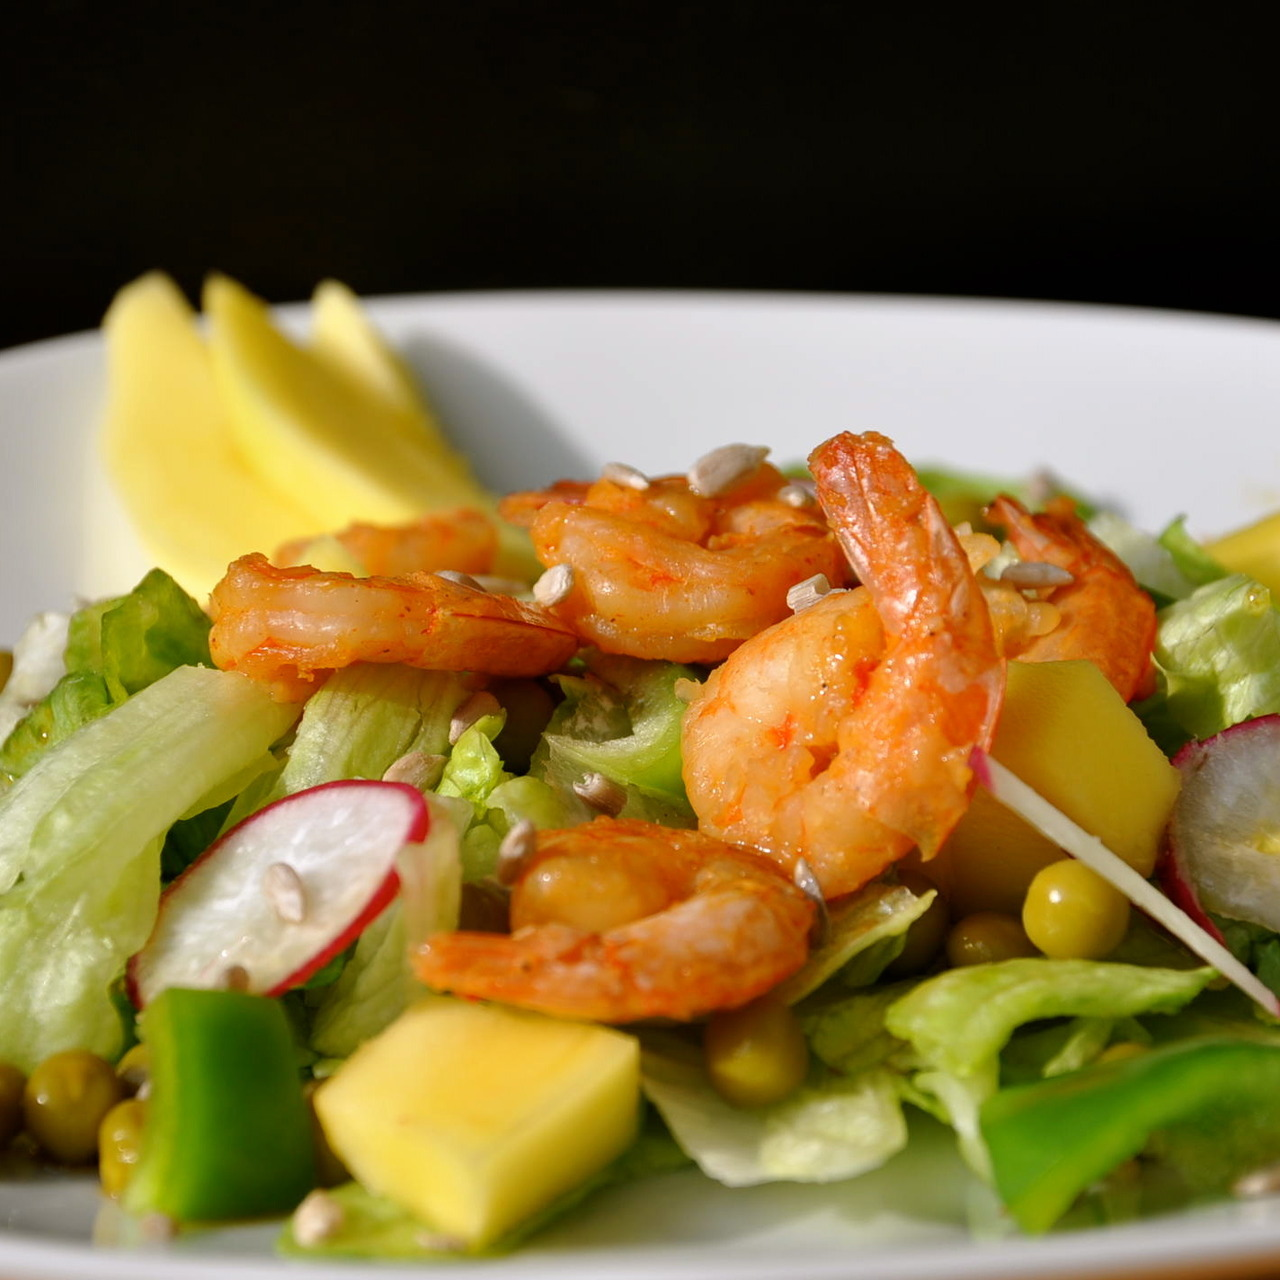 FoodShot #35: Salad with shrimps Target: Lose Weight Preparation time: 50 minutes Serving: 529 g Calories: 412,5  Protein: 16,1 g Fat: 15,3 g Carbohydrates: 60,5 g Get The Recipe Visit Daybite.com